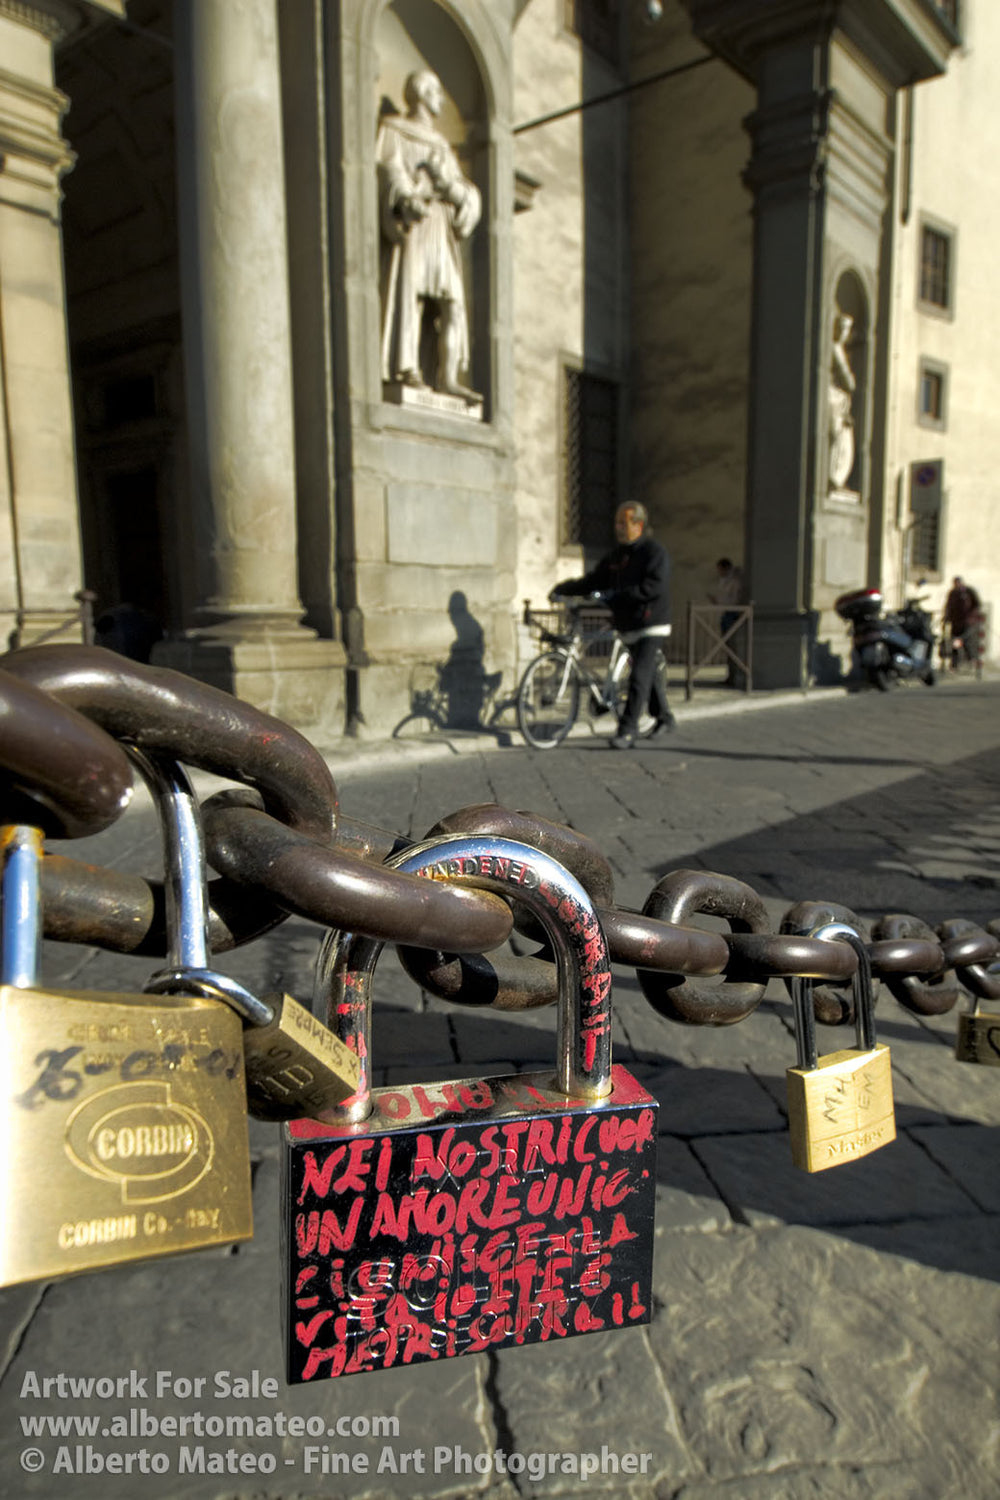 Lock with love writings, Galeria Uficci, Florence. | Open Edition Fine Art Print.